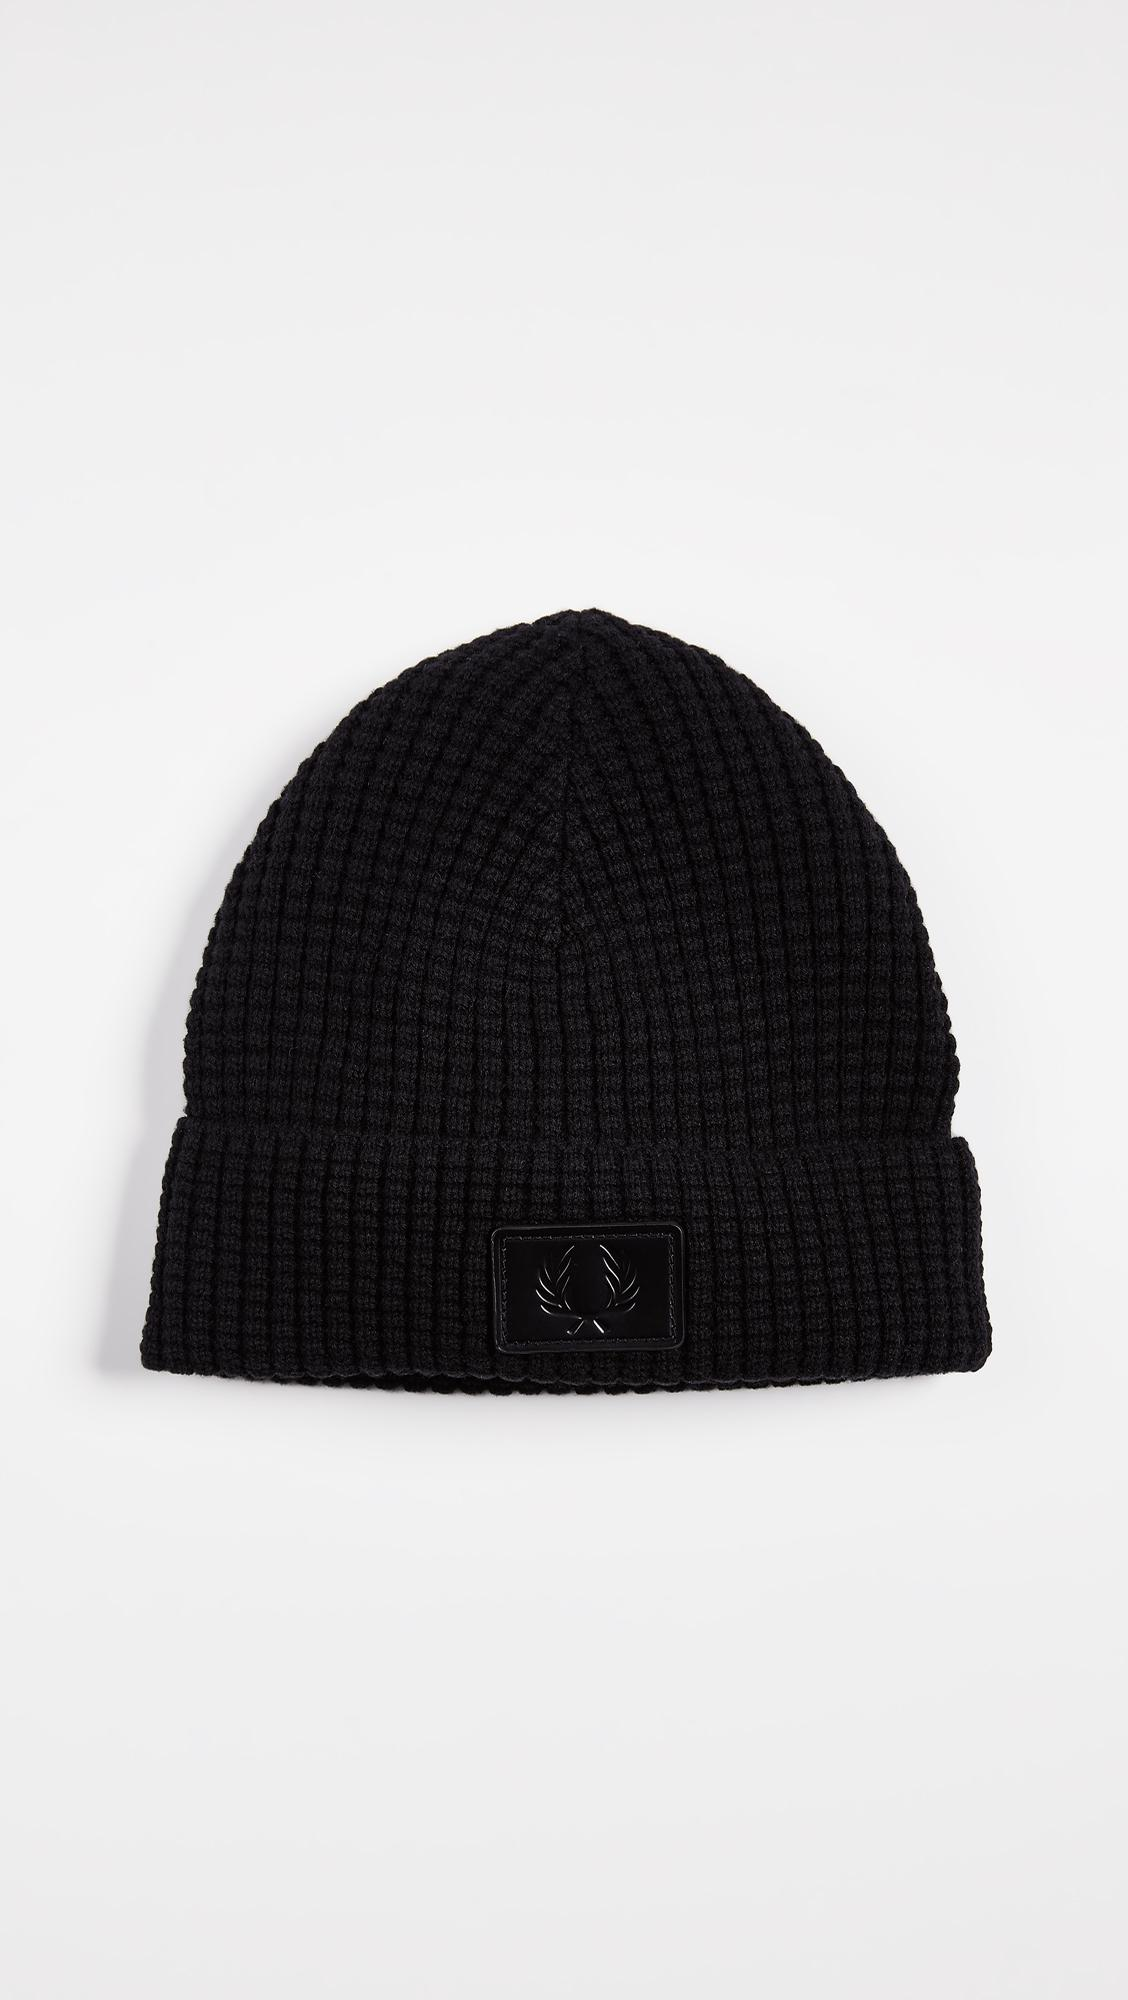 f25ea419c67d8 Lyst - Fred Perry Waffle Knit Beanie in Black for Men - Save 33%